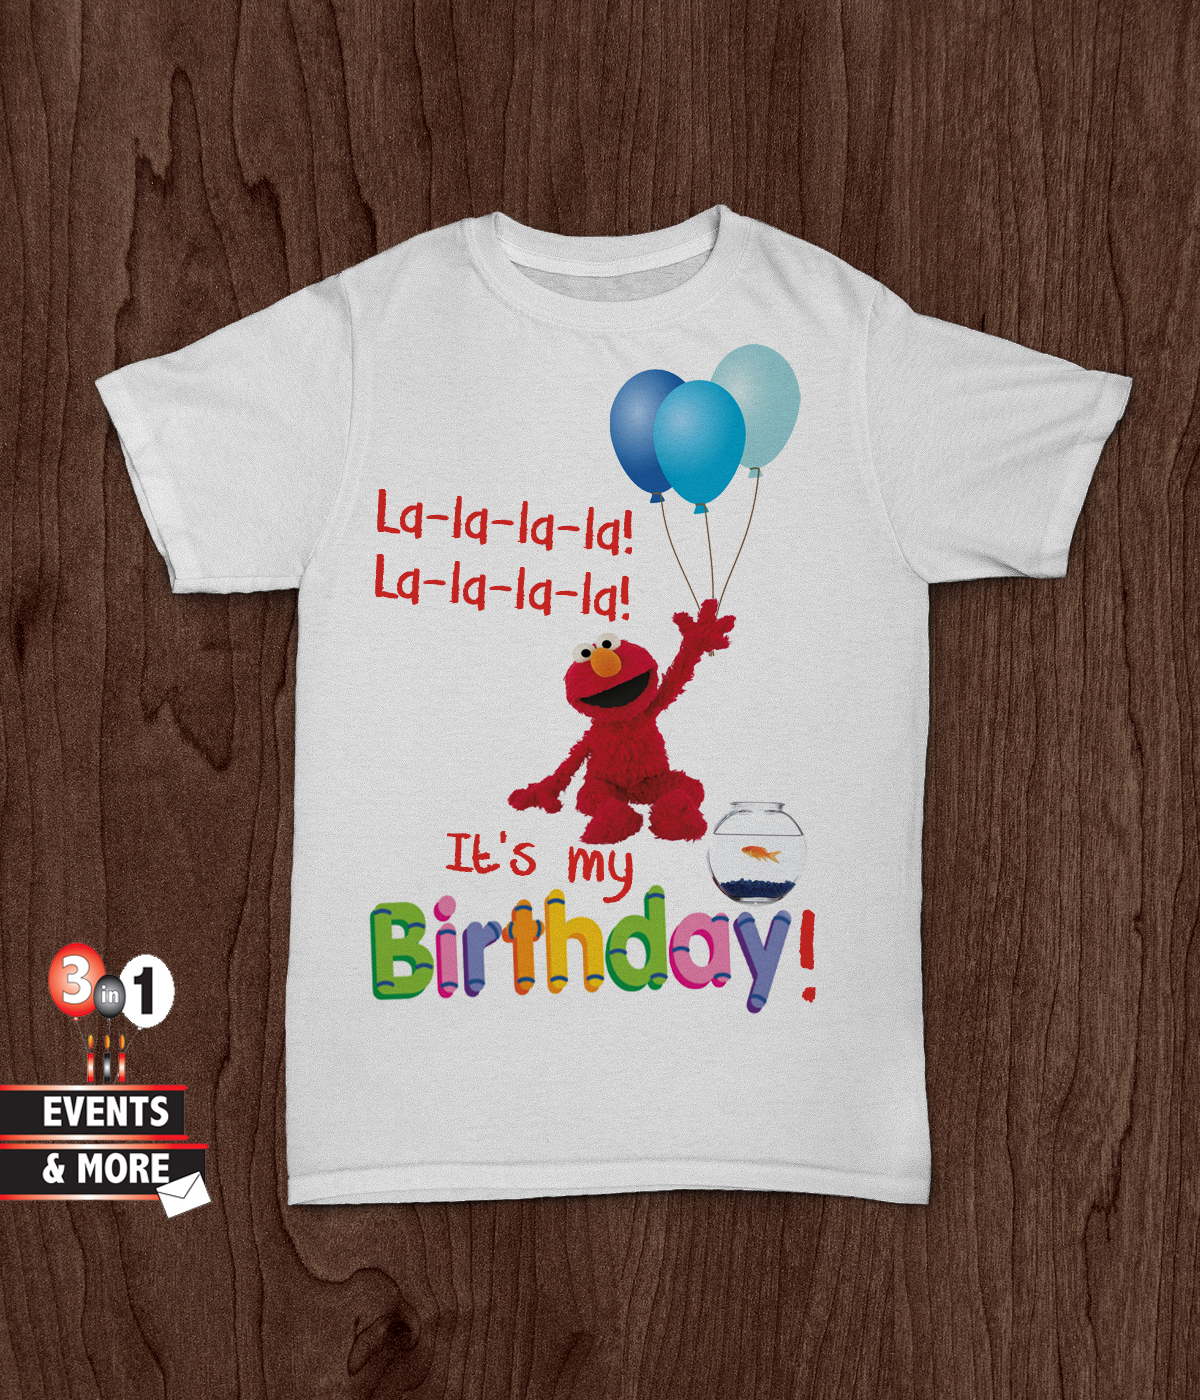 It S My Birthday Elmo T Shirt 3in1 Events More Store